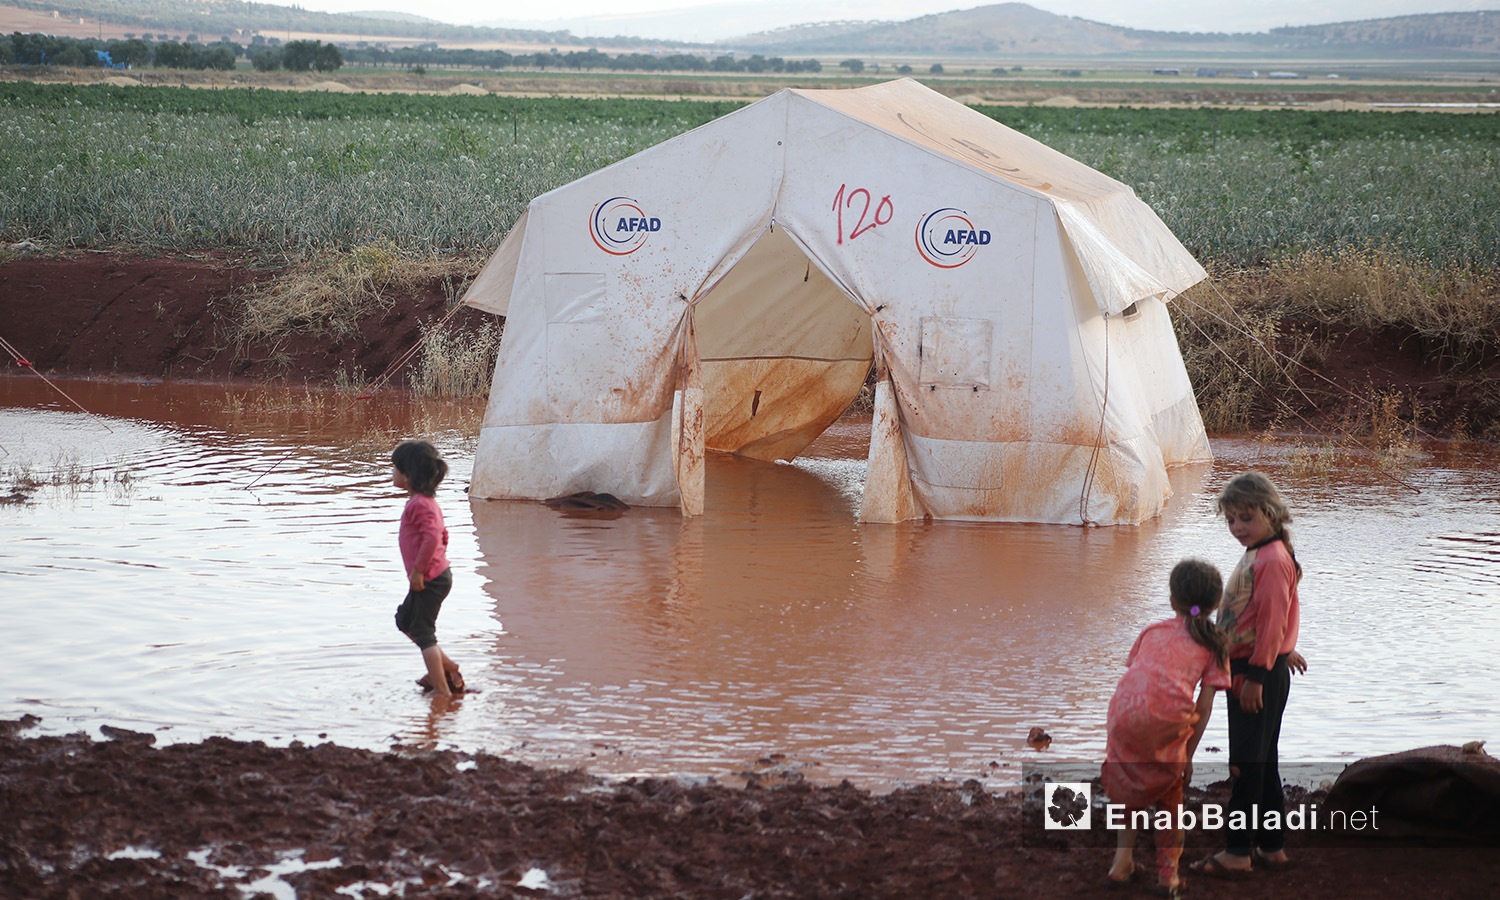 """One of the tents flooded by stormwater in """"Sahl al-Khair"""" camp for Syrian internally displaced people (IDPs) near Kafr Bunni in northern Idlib countryside – 19 June 2020  (Enab Baladi / Yousef Ghuraibi)"""